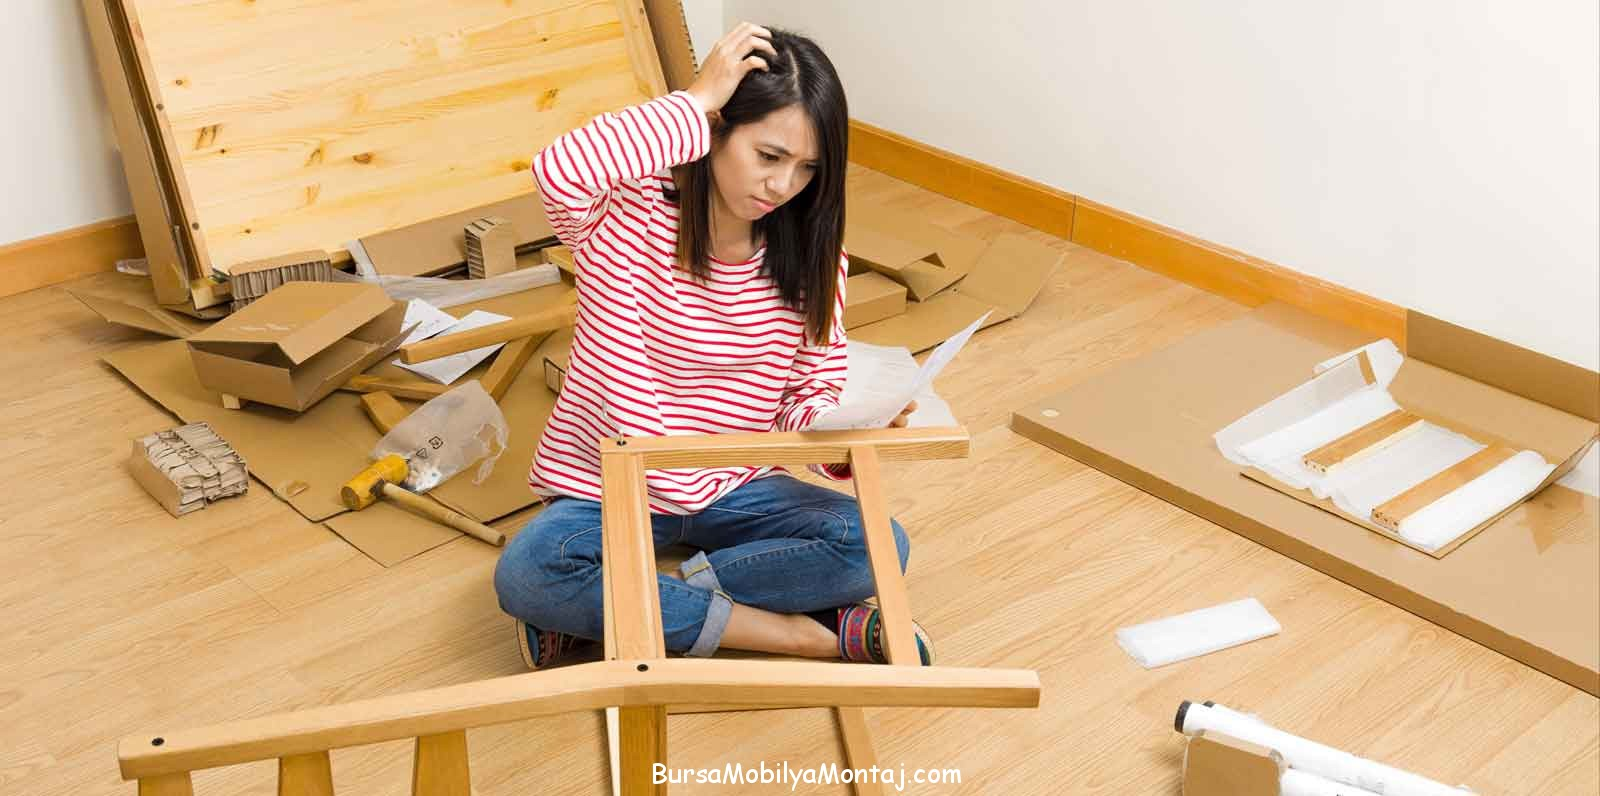 Dismantling and Assembling Home and Office Furniture